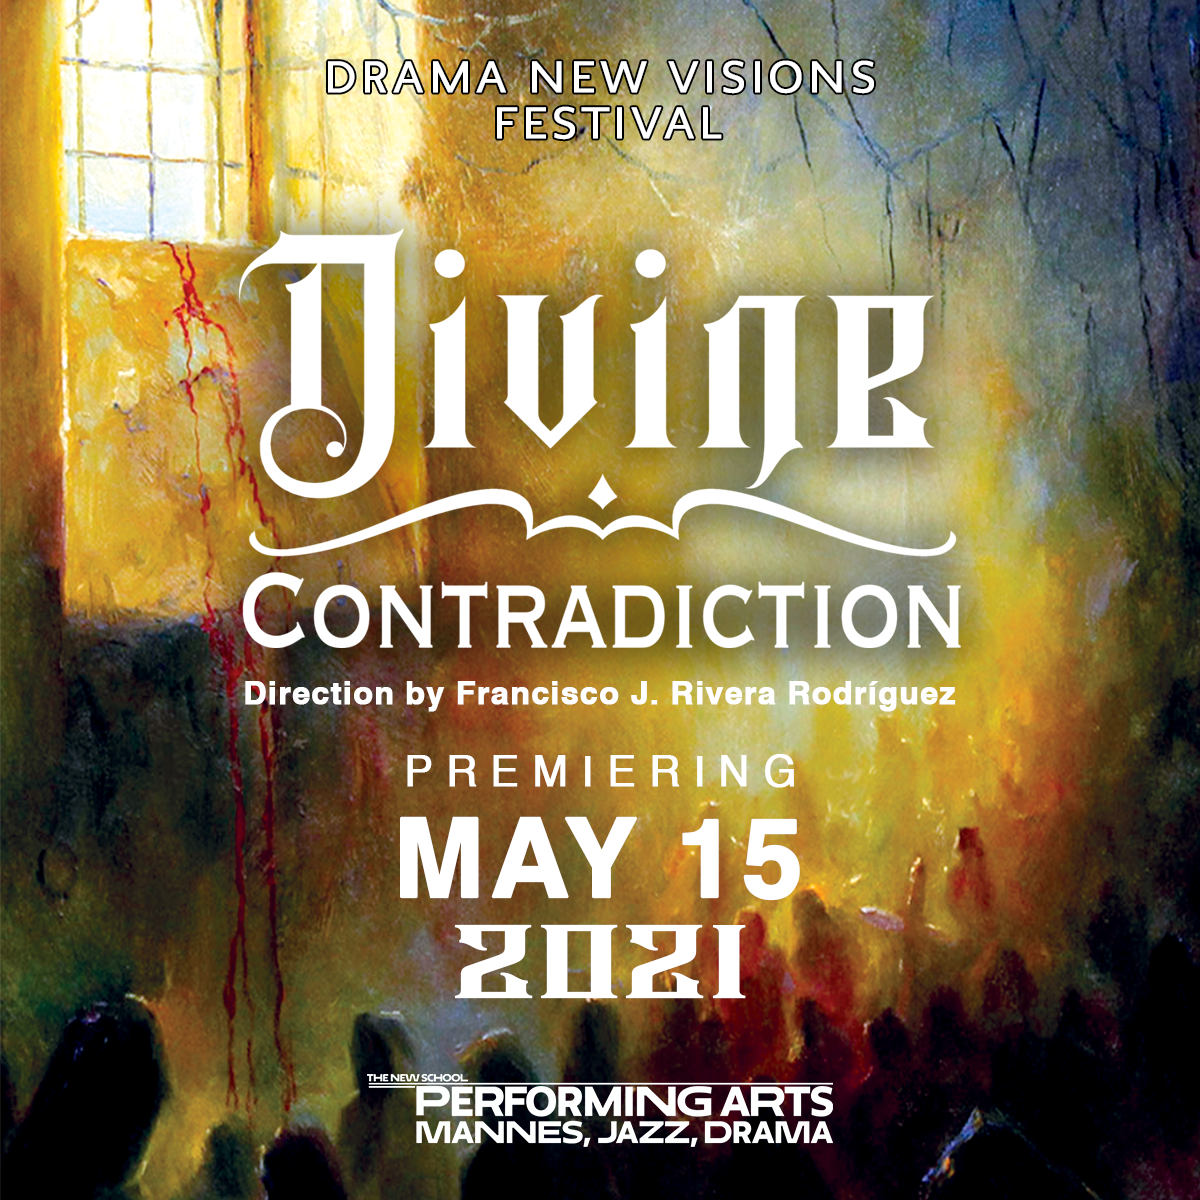 ONLINE | 2021 New Visions Festival production of DIVINE CONTRADICTION